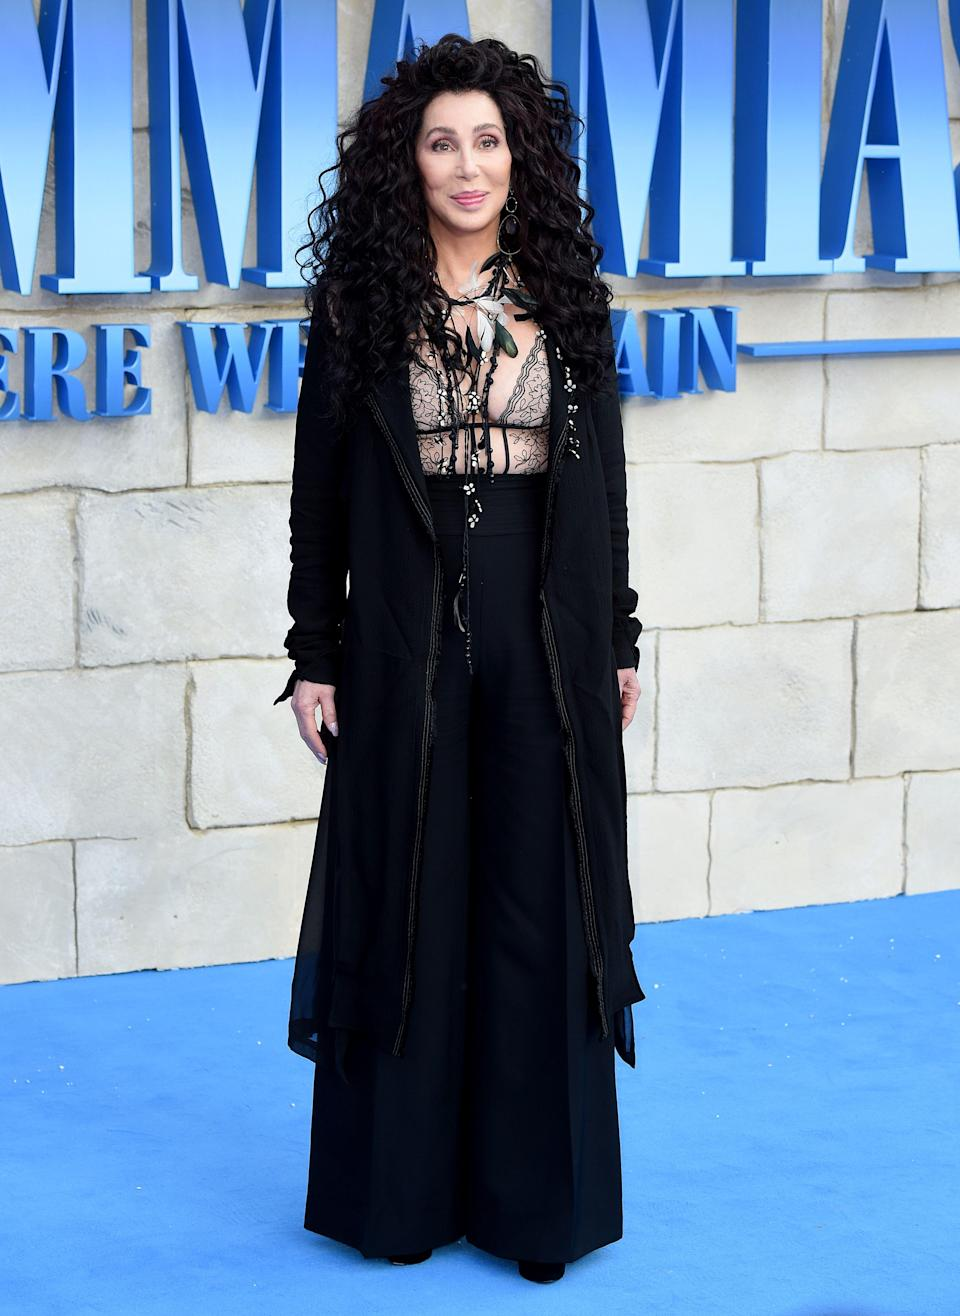 <p>On 16 July, Cher wore an all-black get-up for the UK premiere of 'Mamma Mia! Here We Go Again'. <em>[Photo: Getty]</em> </p>